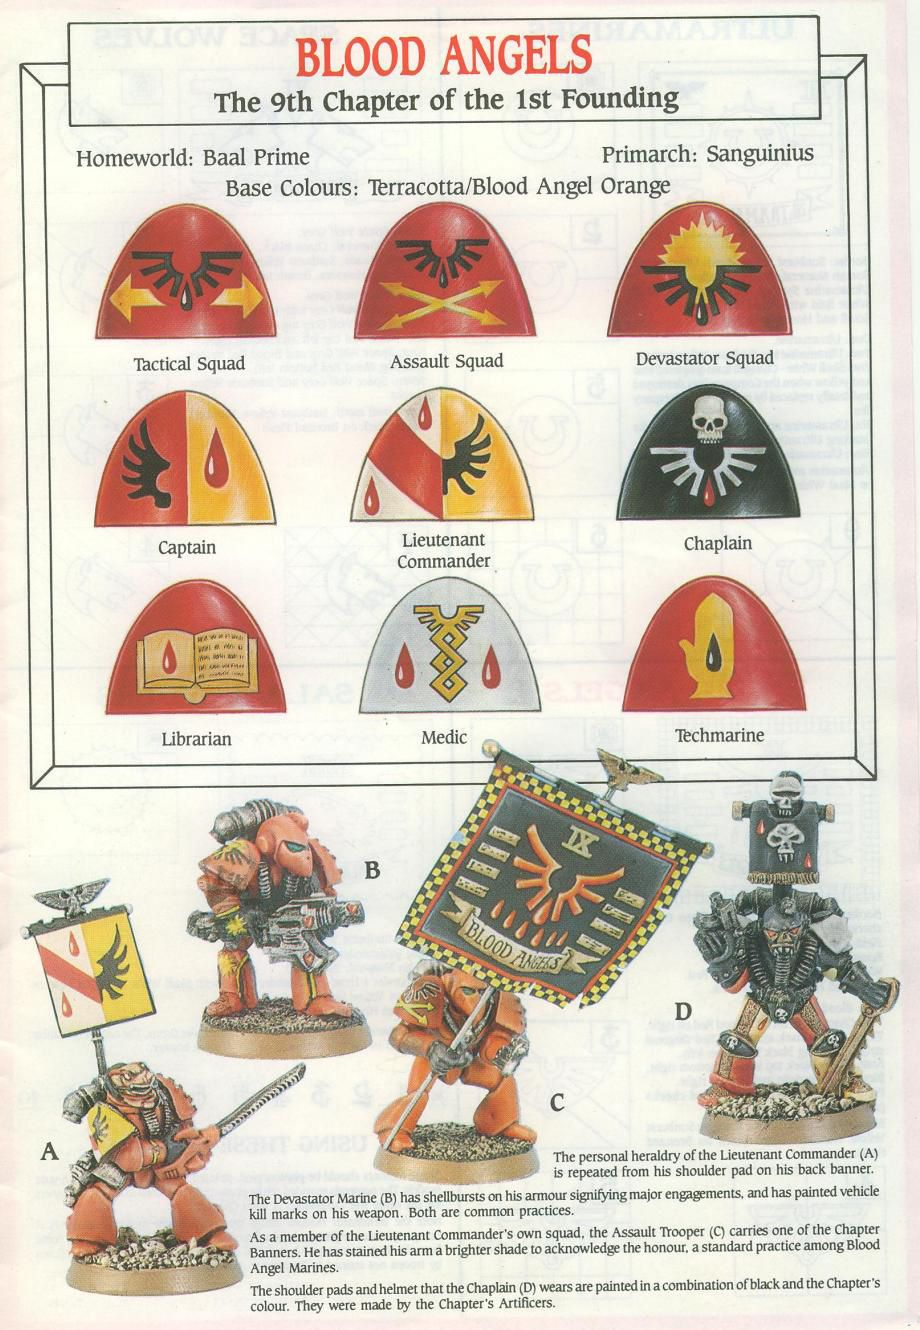 Some classic Blood Angel markings. Sort of in love with that Techmarine symbol.